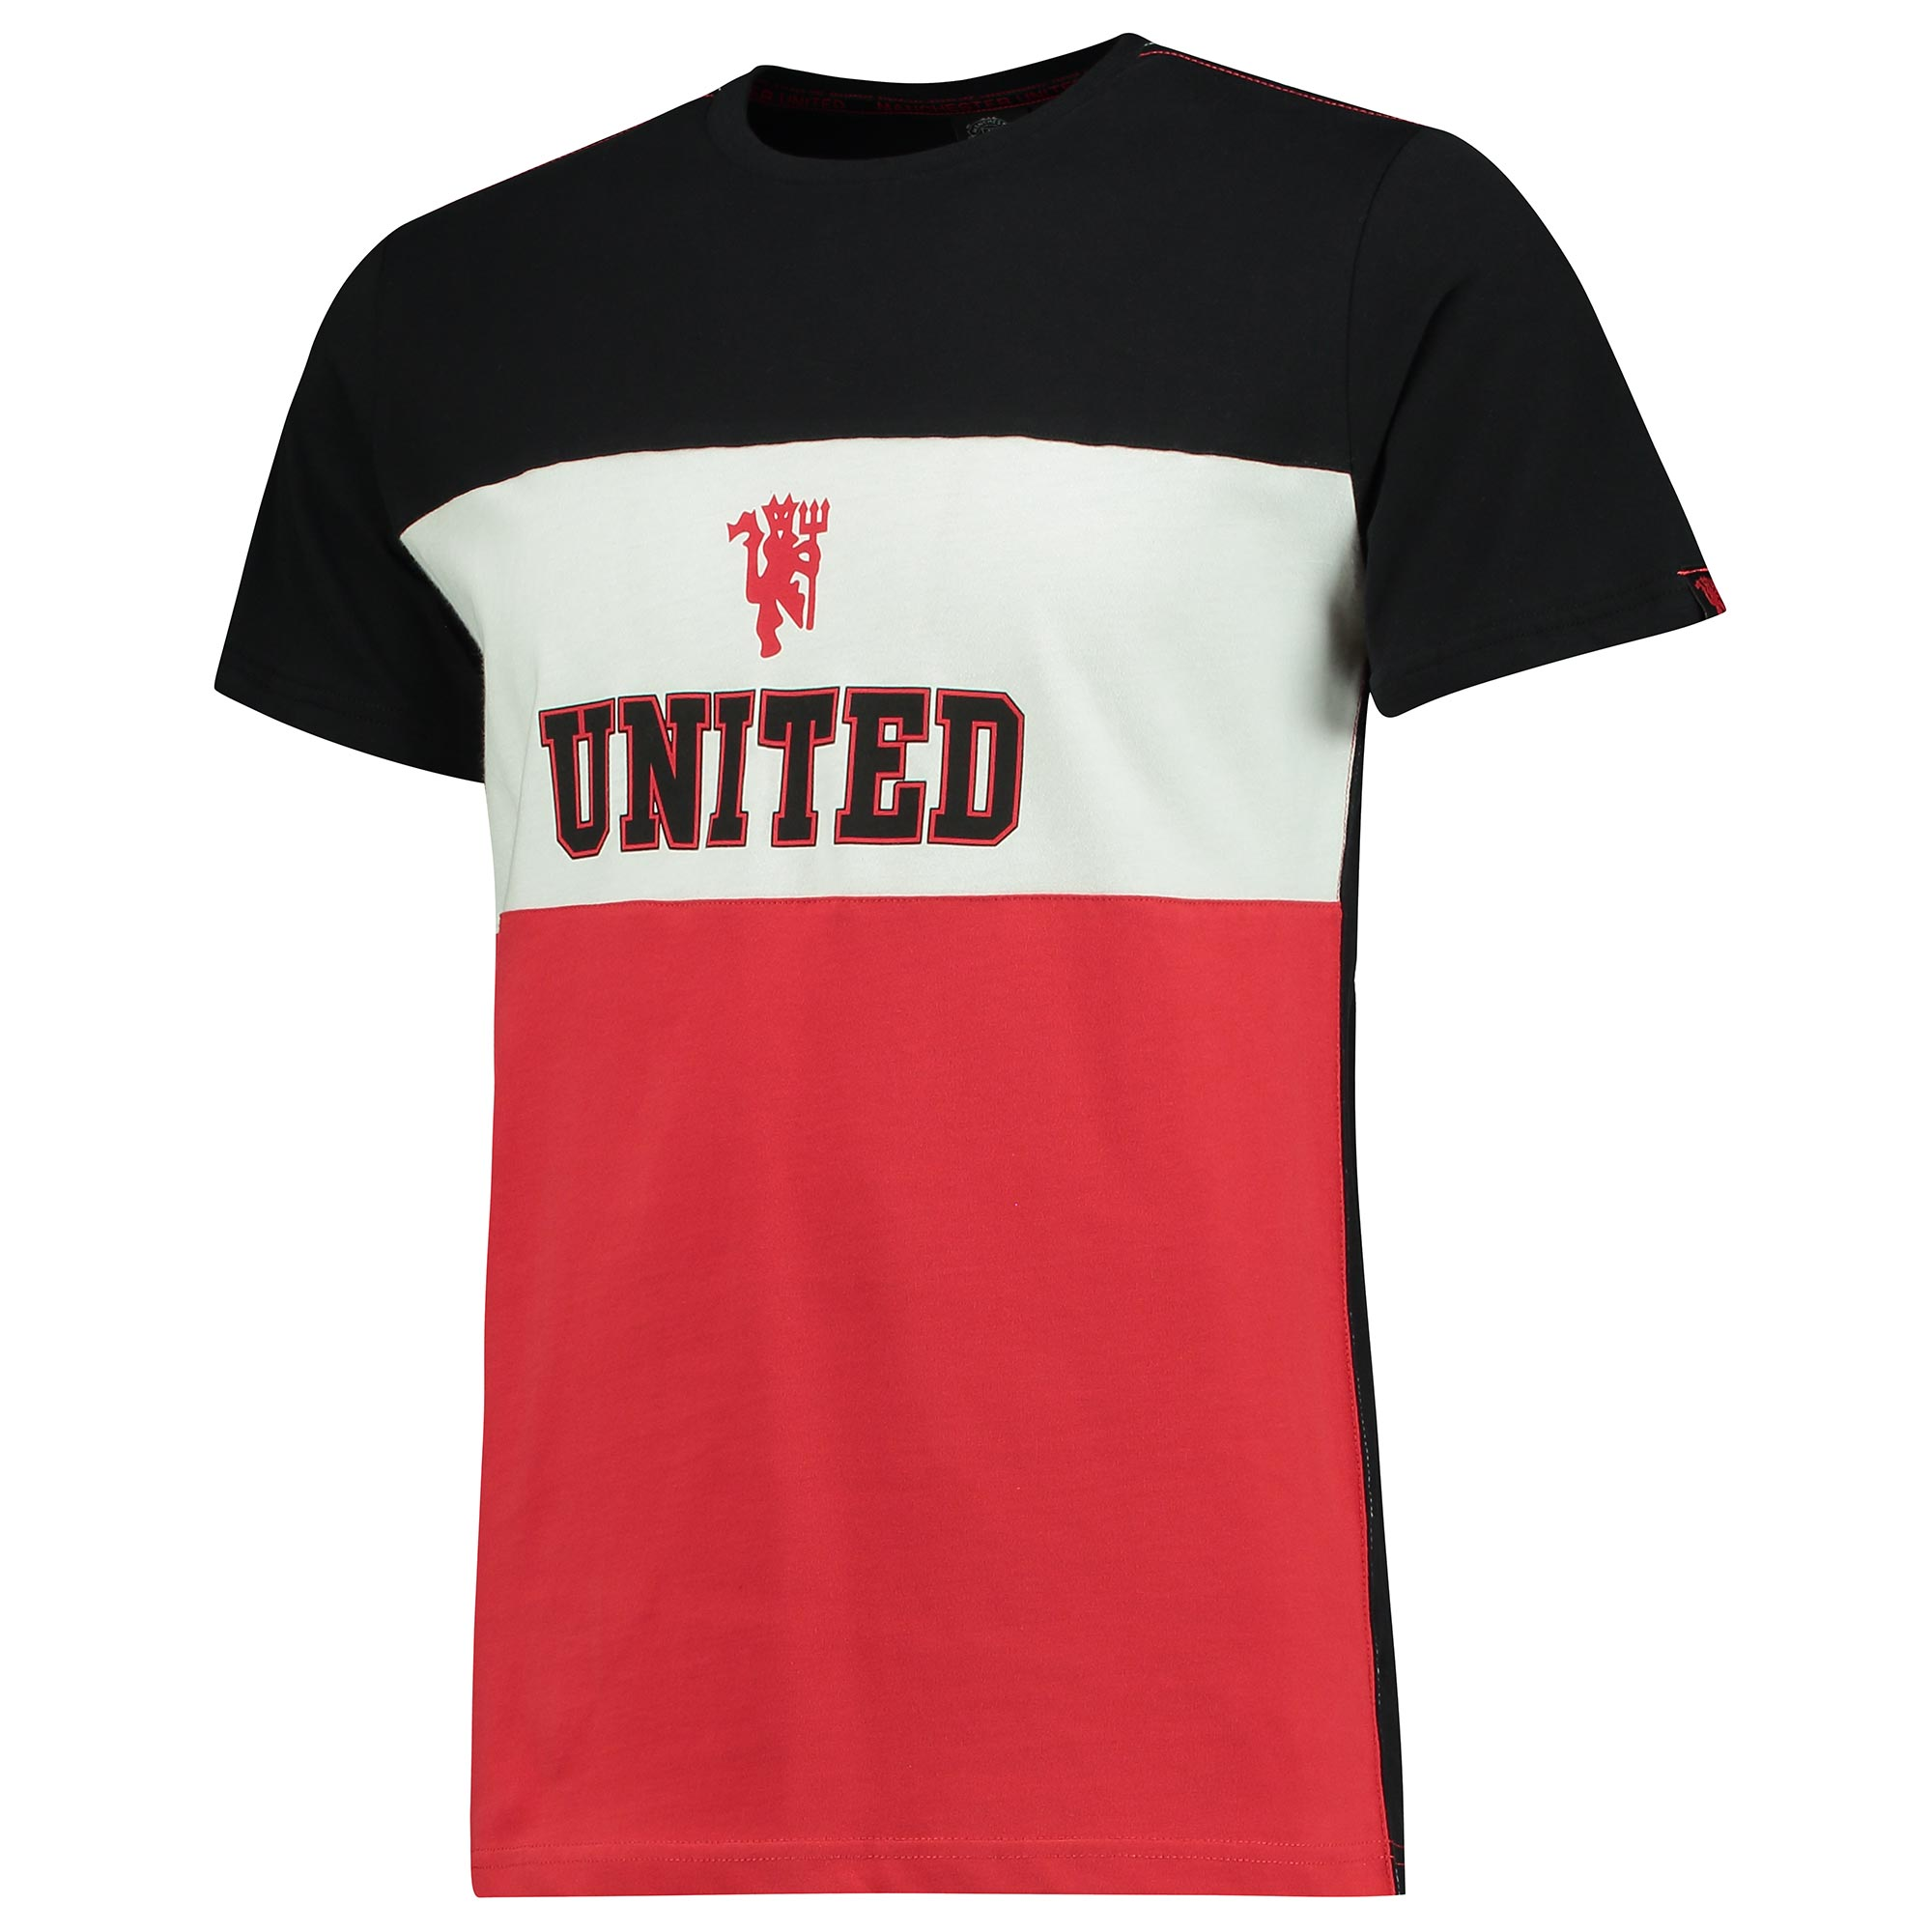 Manchester United Panel T-Shirt - Black/Red/White - Mens